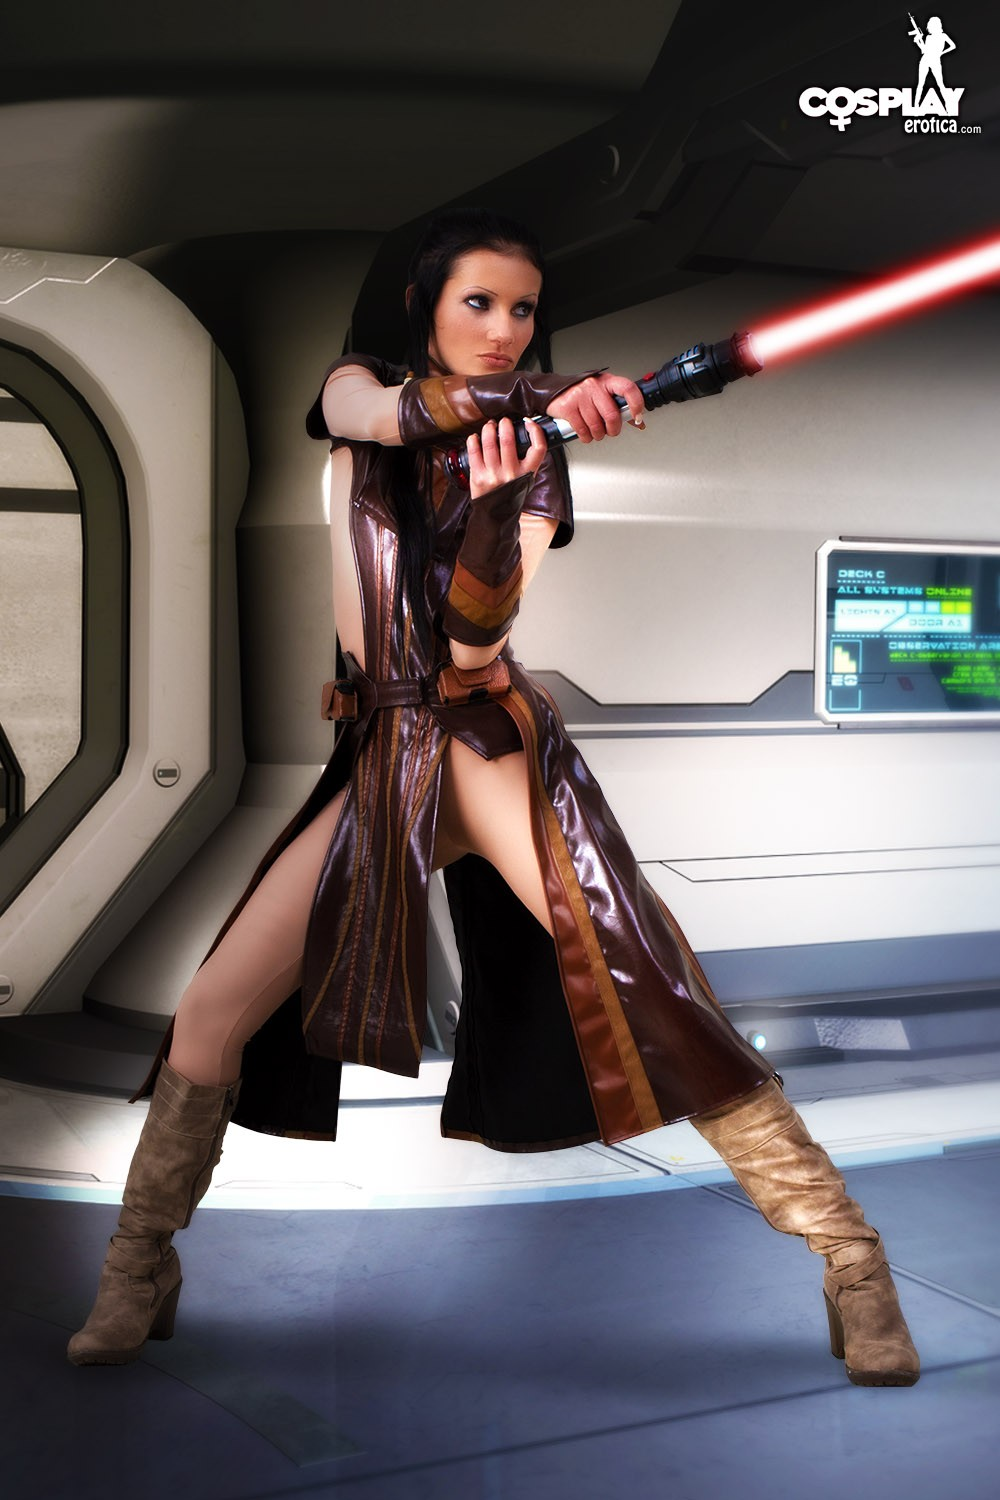 Star wars erotic pictures all